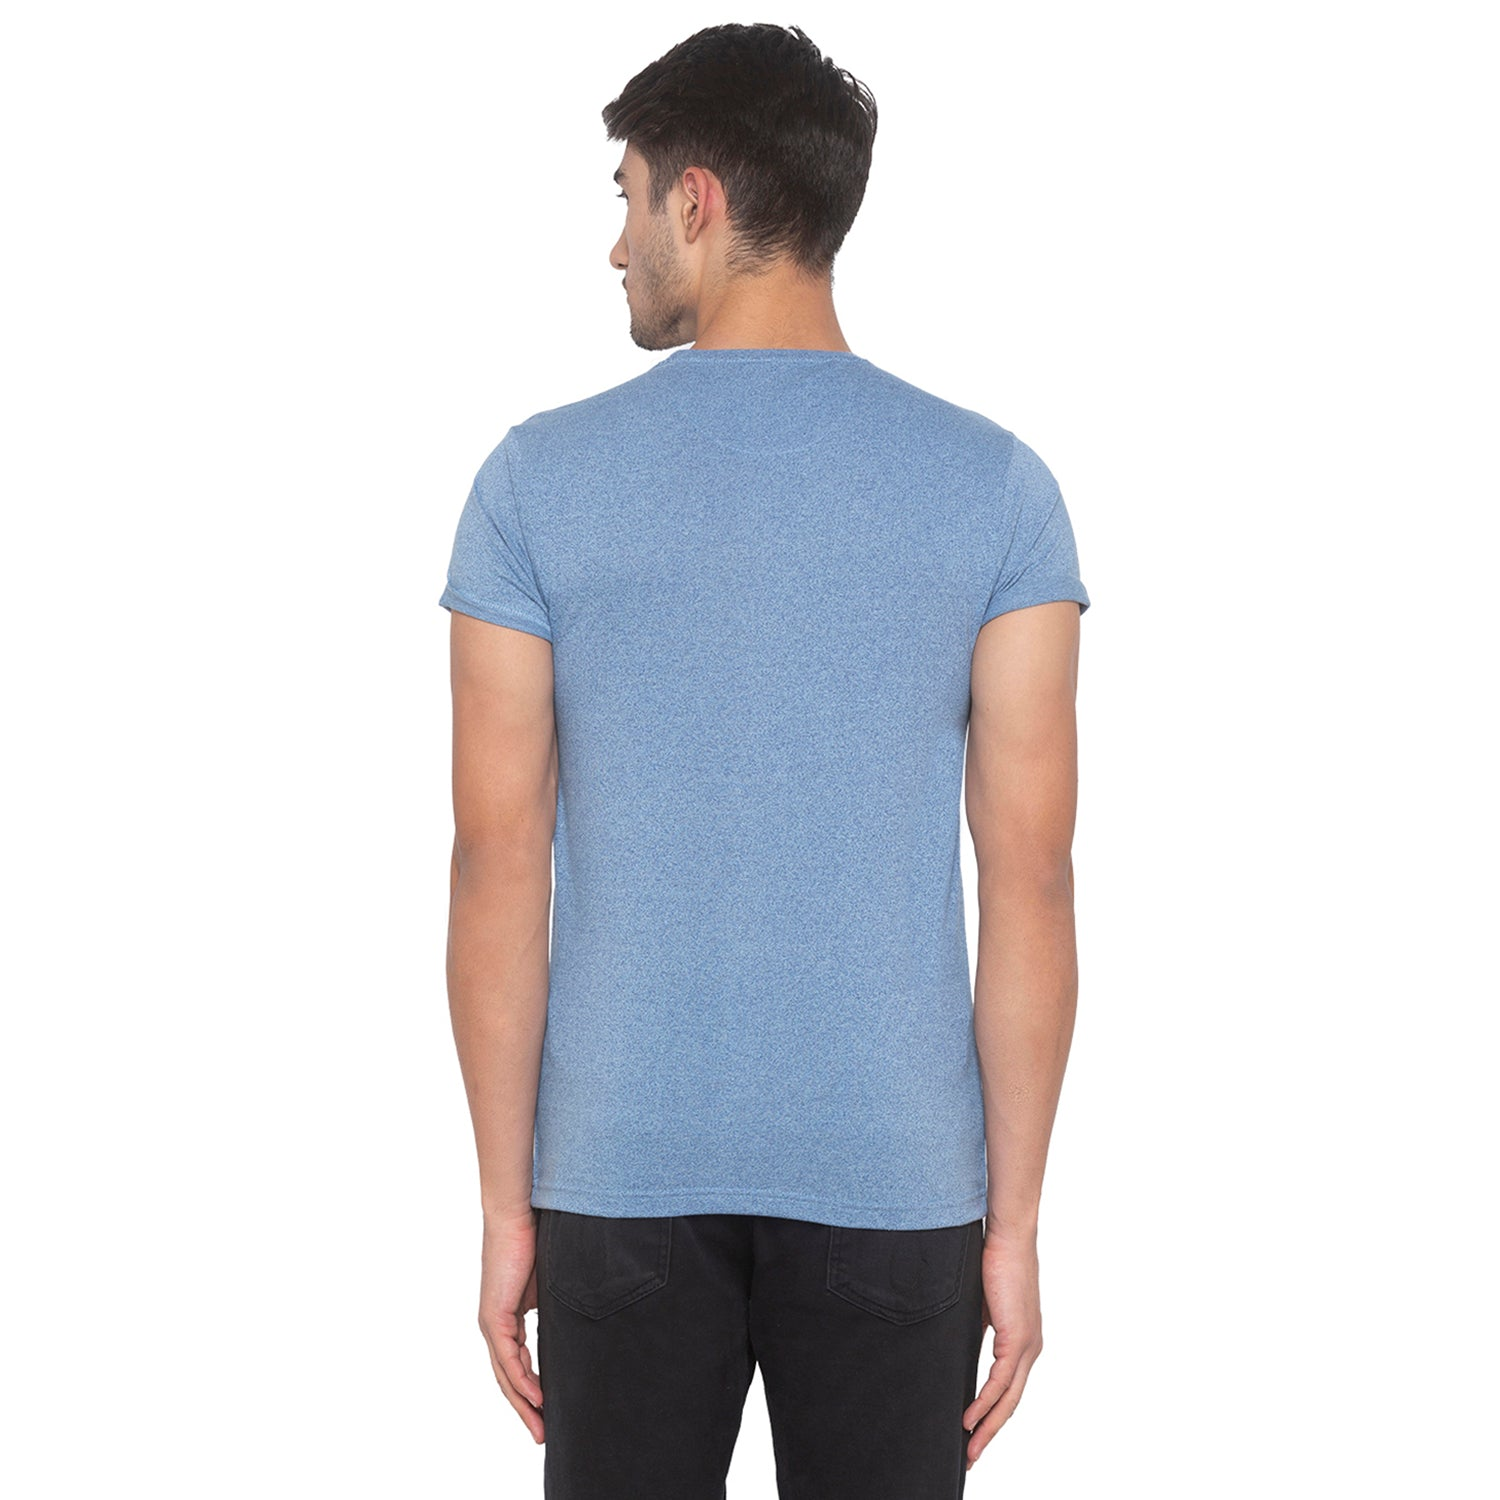 Indigo Blue Solid T-Shirt-3